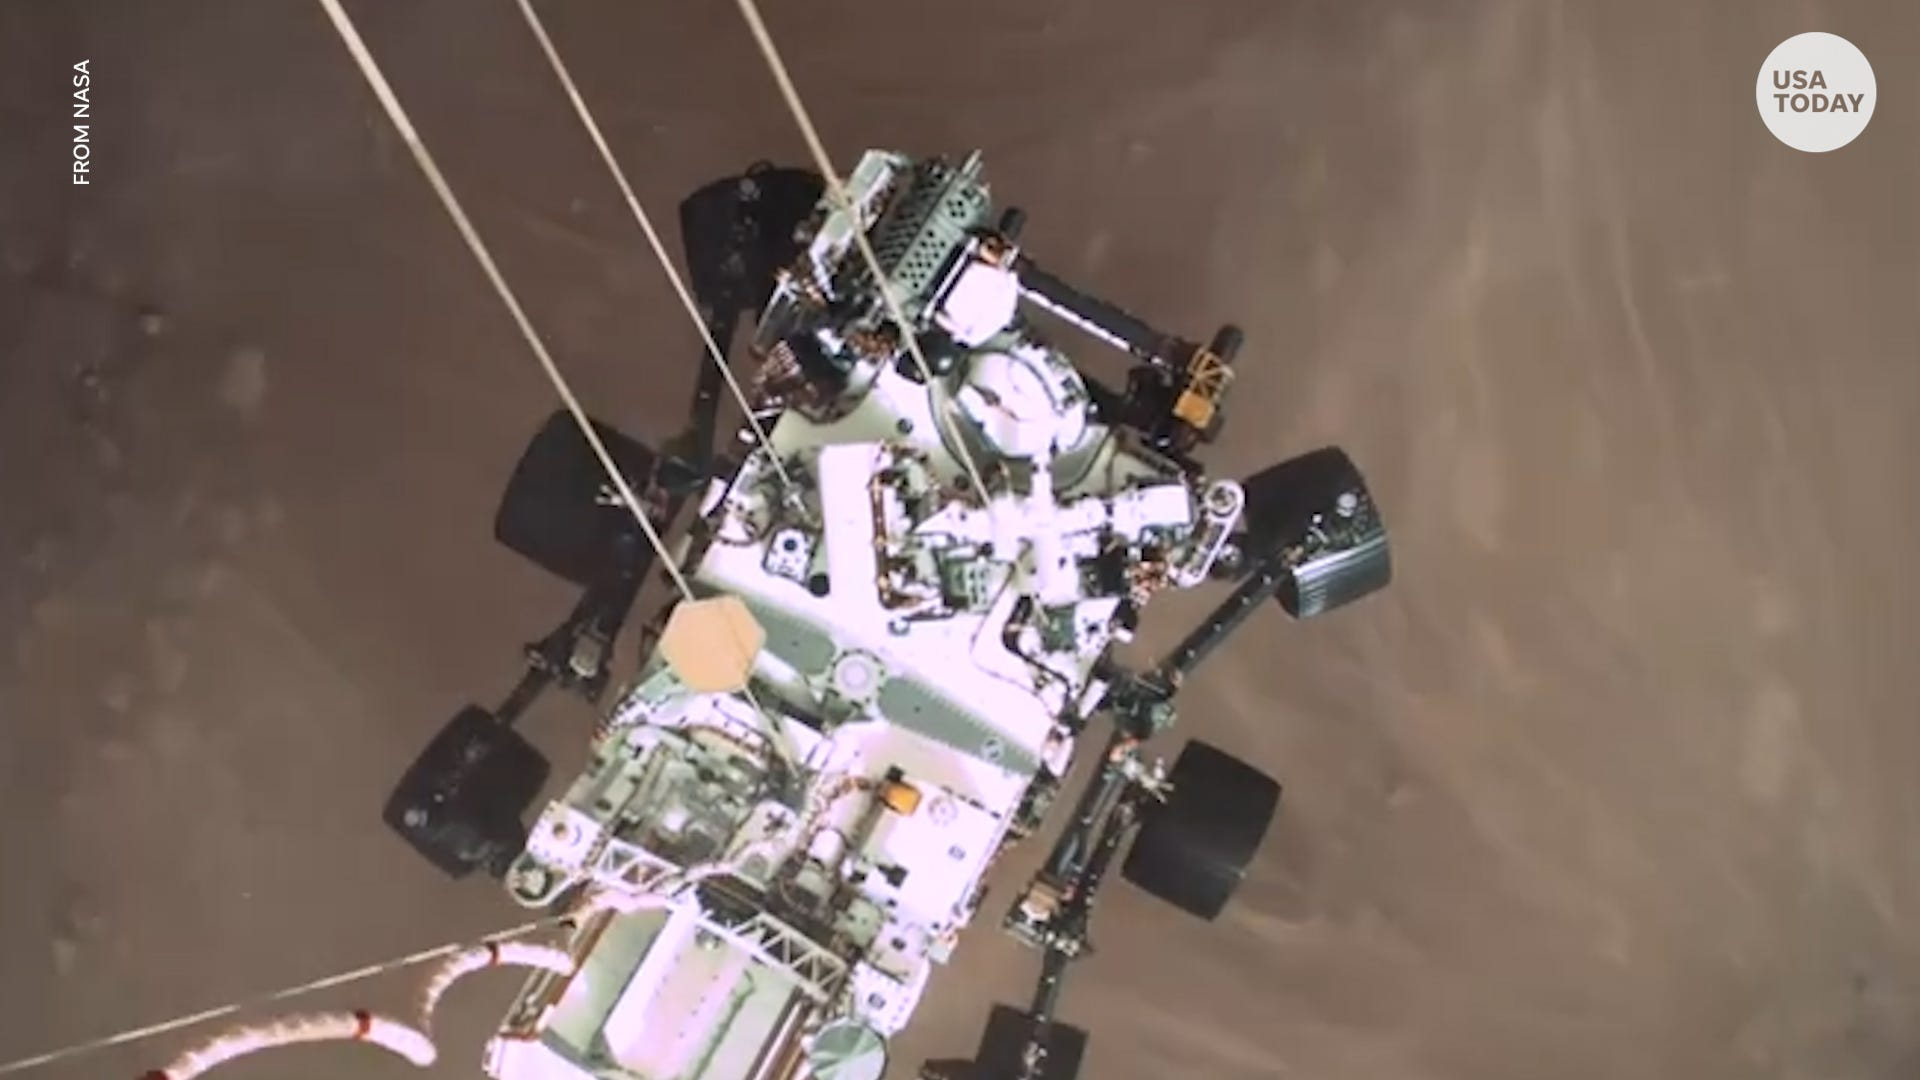 Mars rover captures the first recorded sounds from the planet, including the Martian breeze